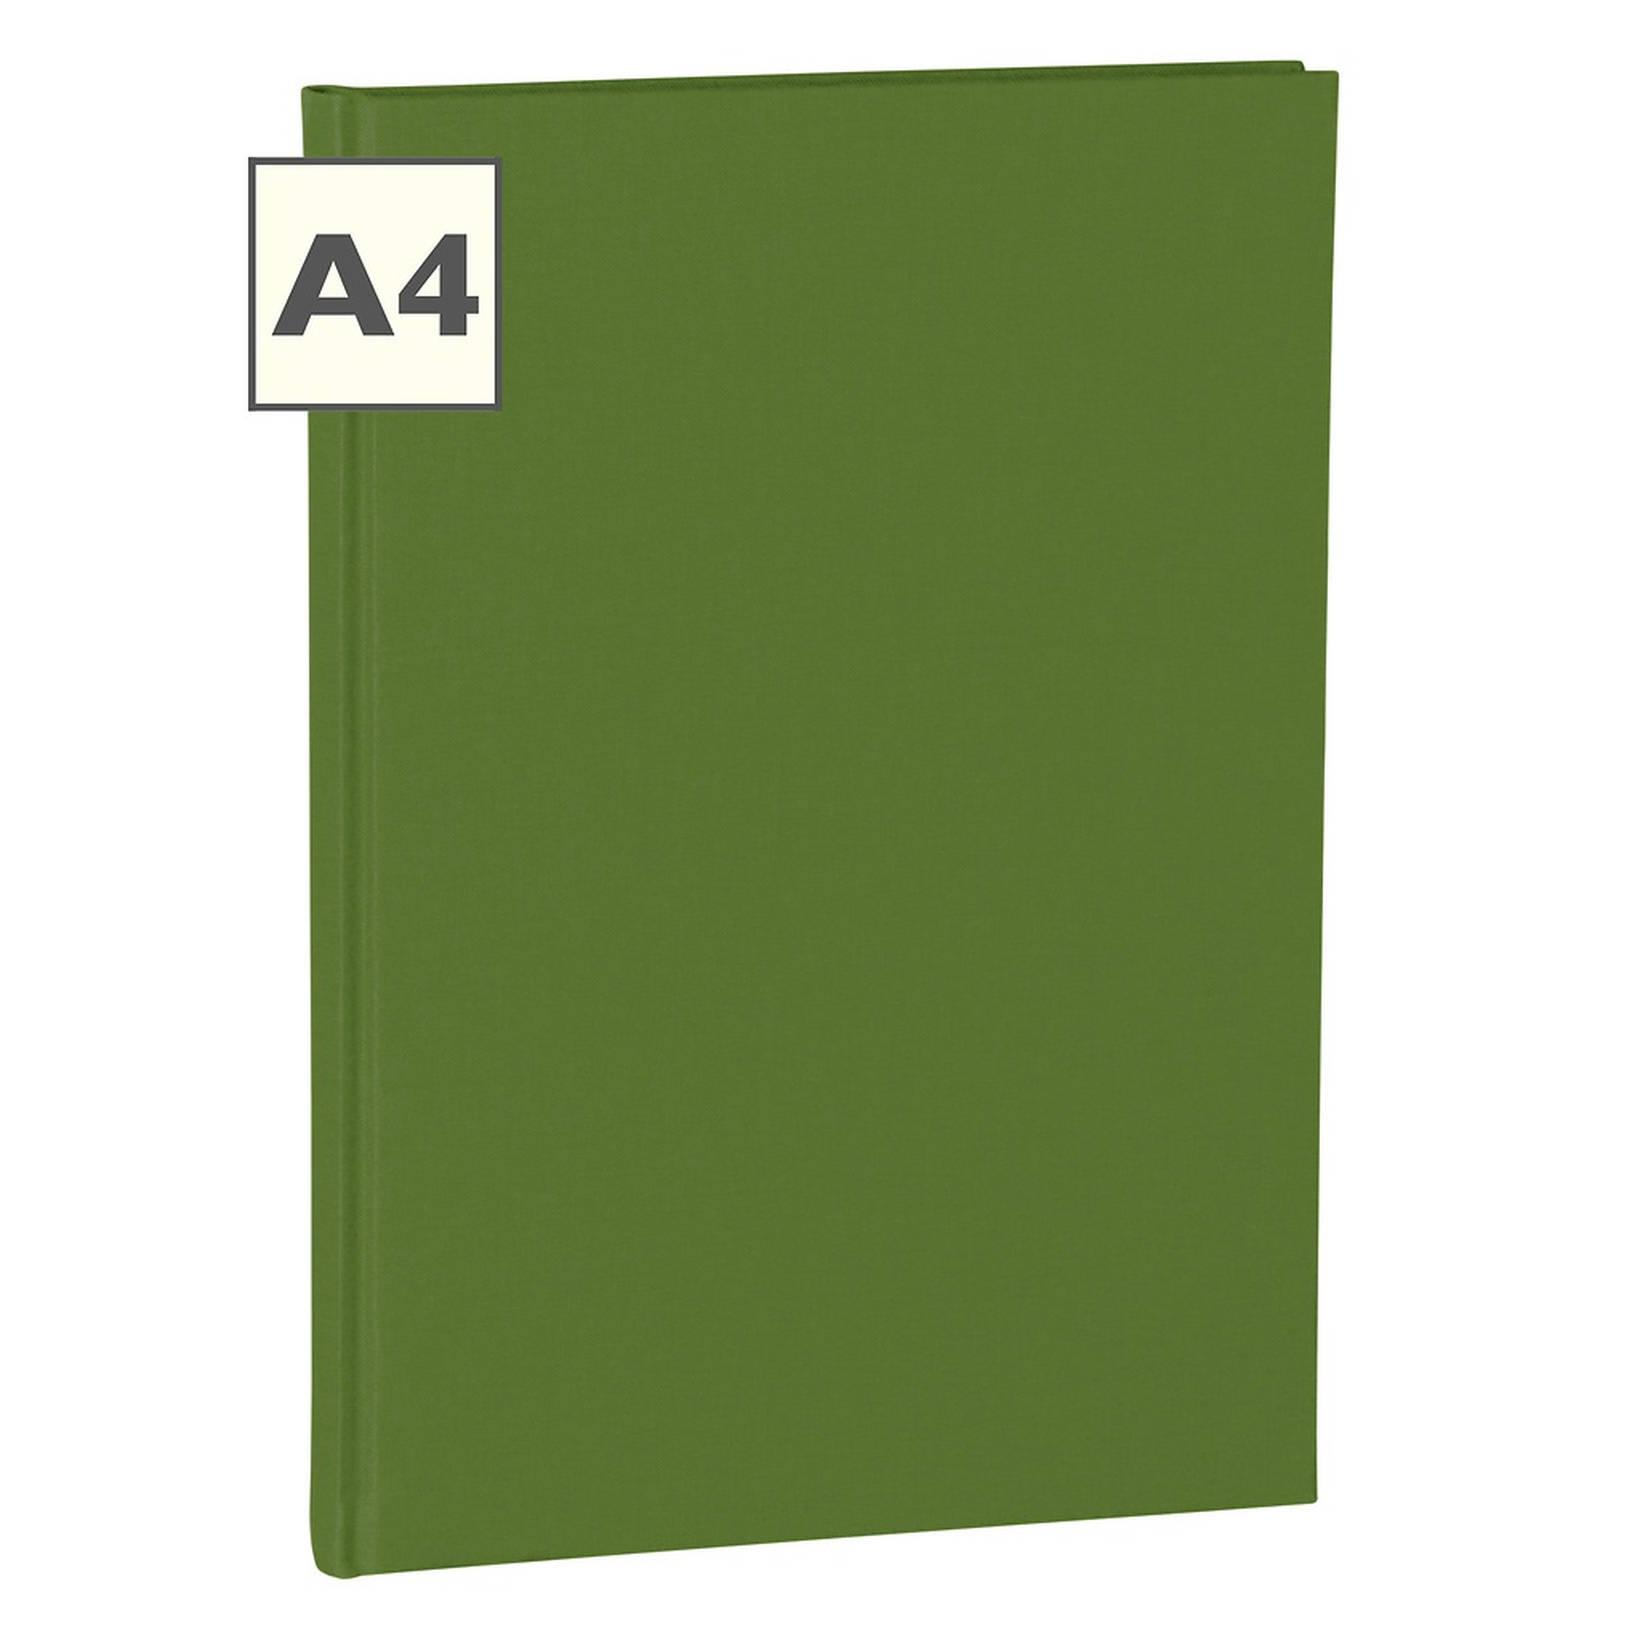 Notebook Classic A4 With Linen Binding, Ruled, Irish